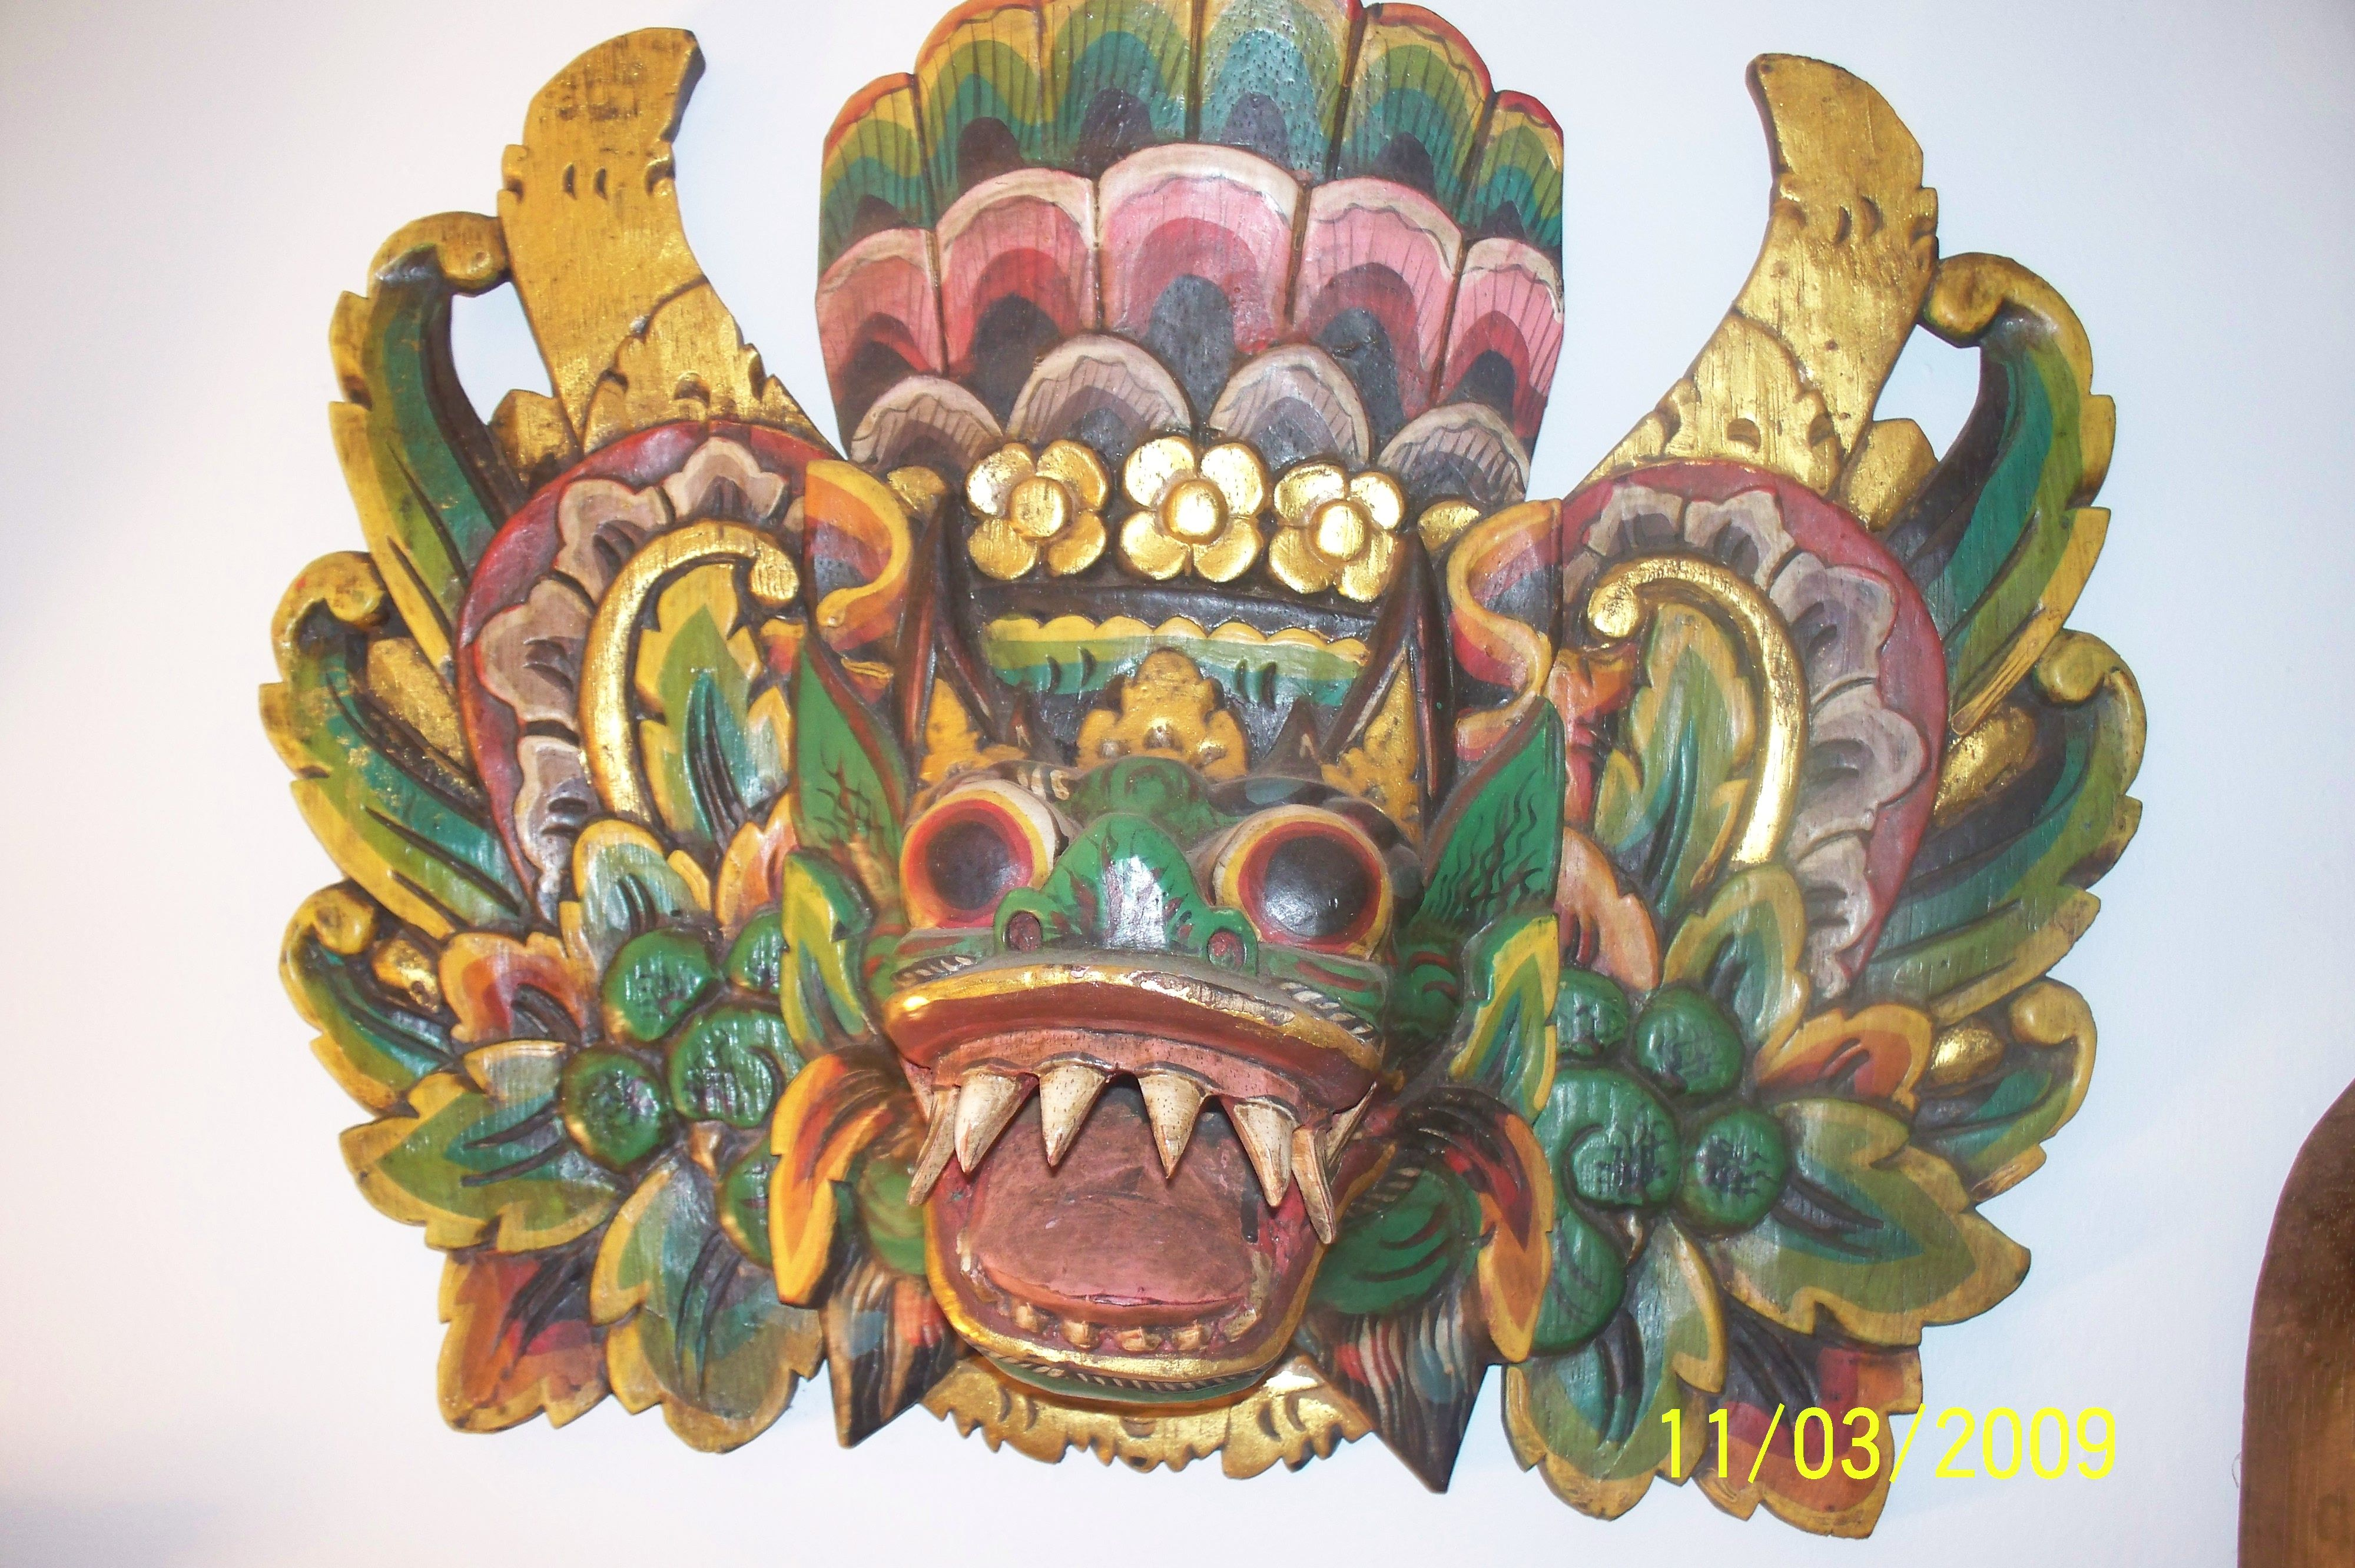 indonesian dragon masks Dragon mask, Dragon, Mask